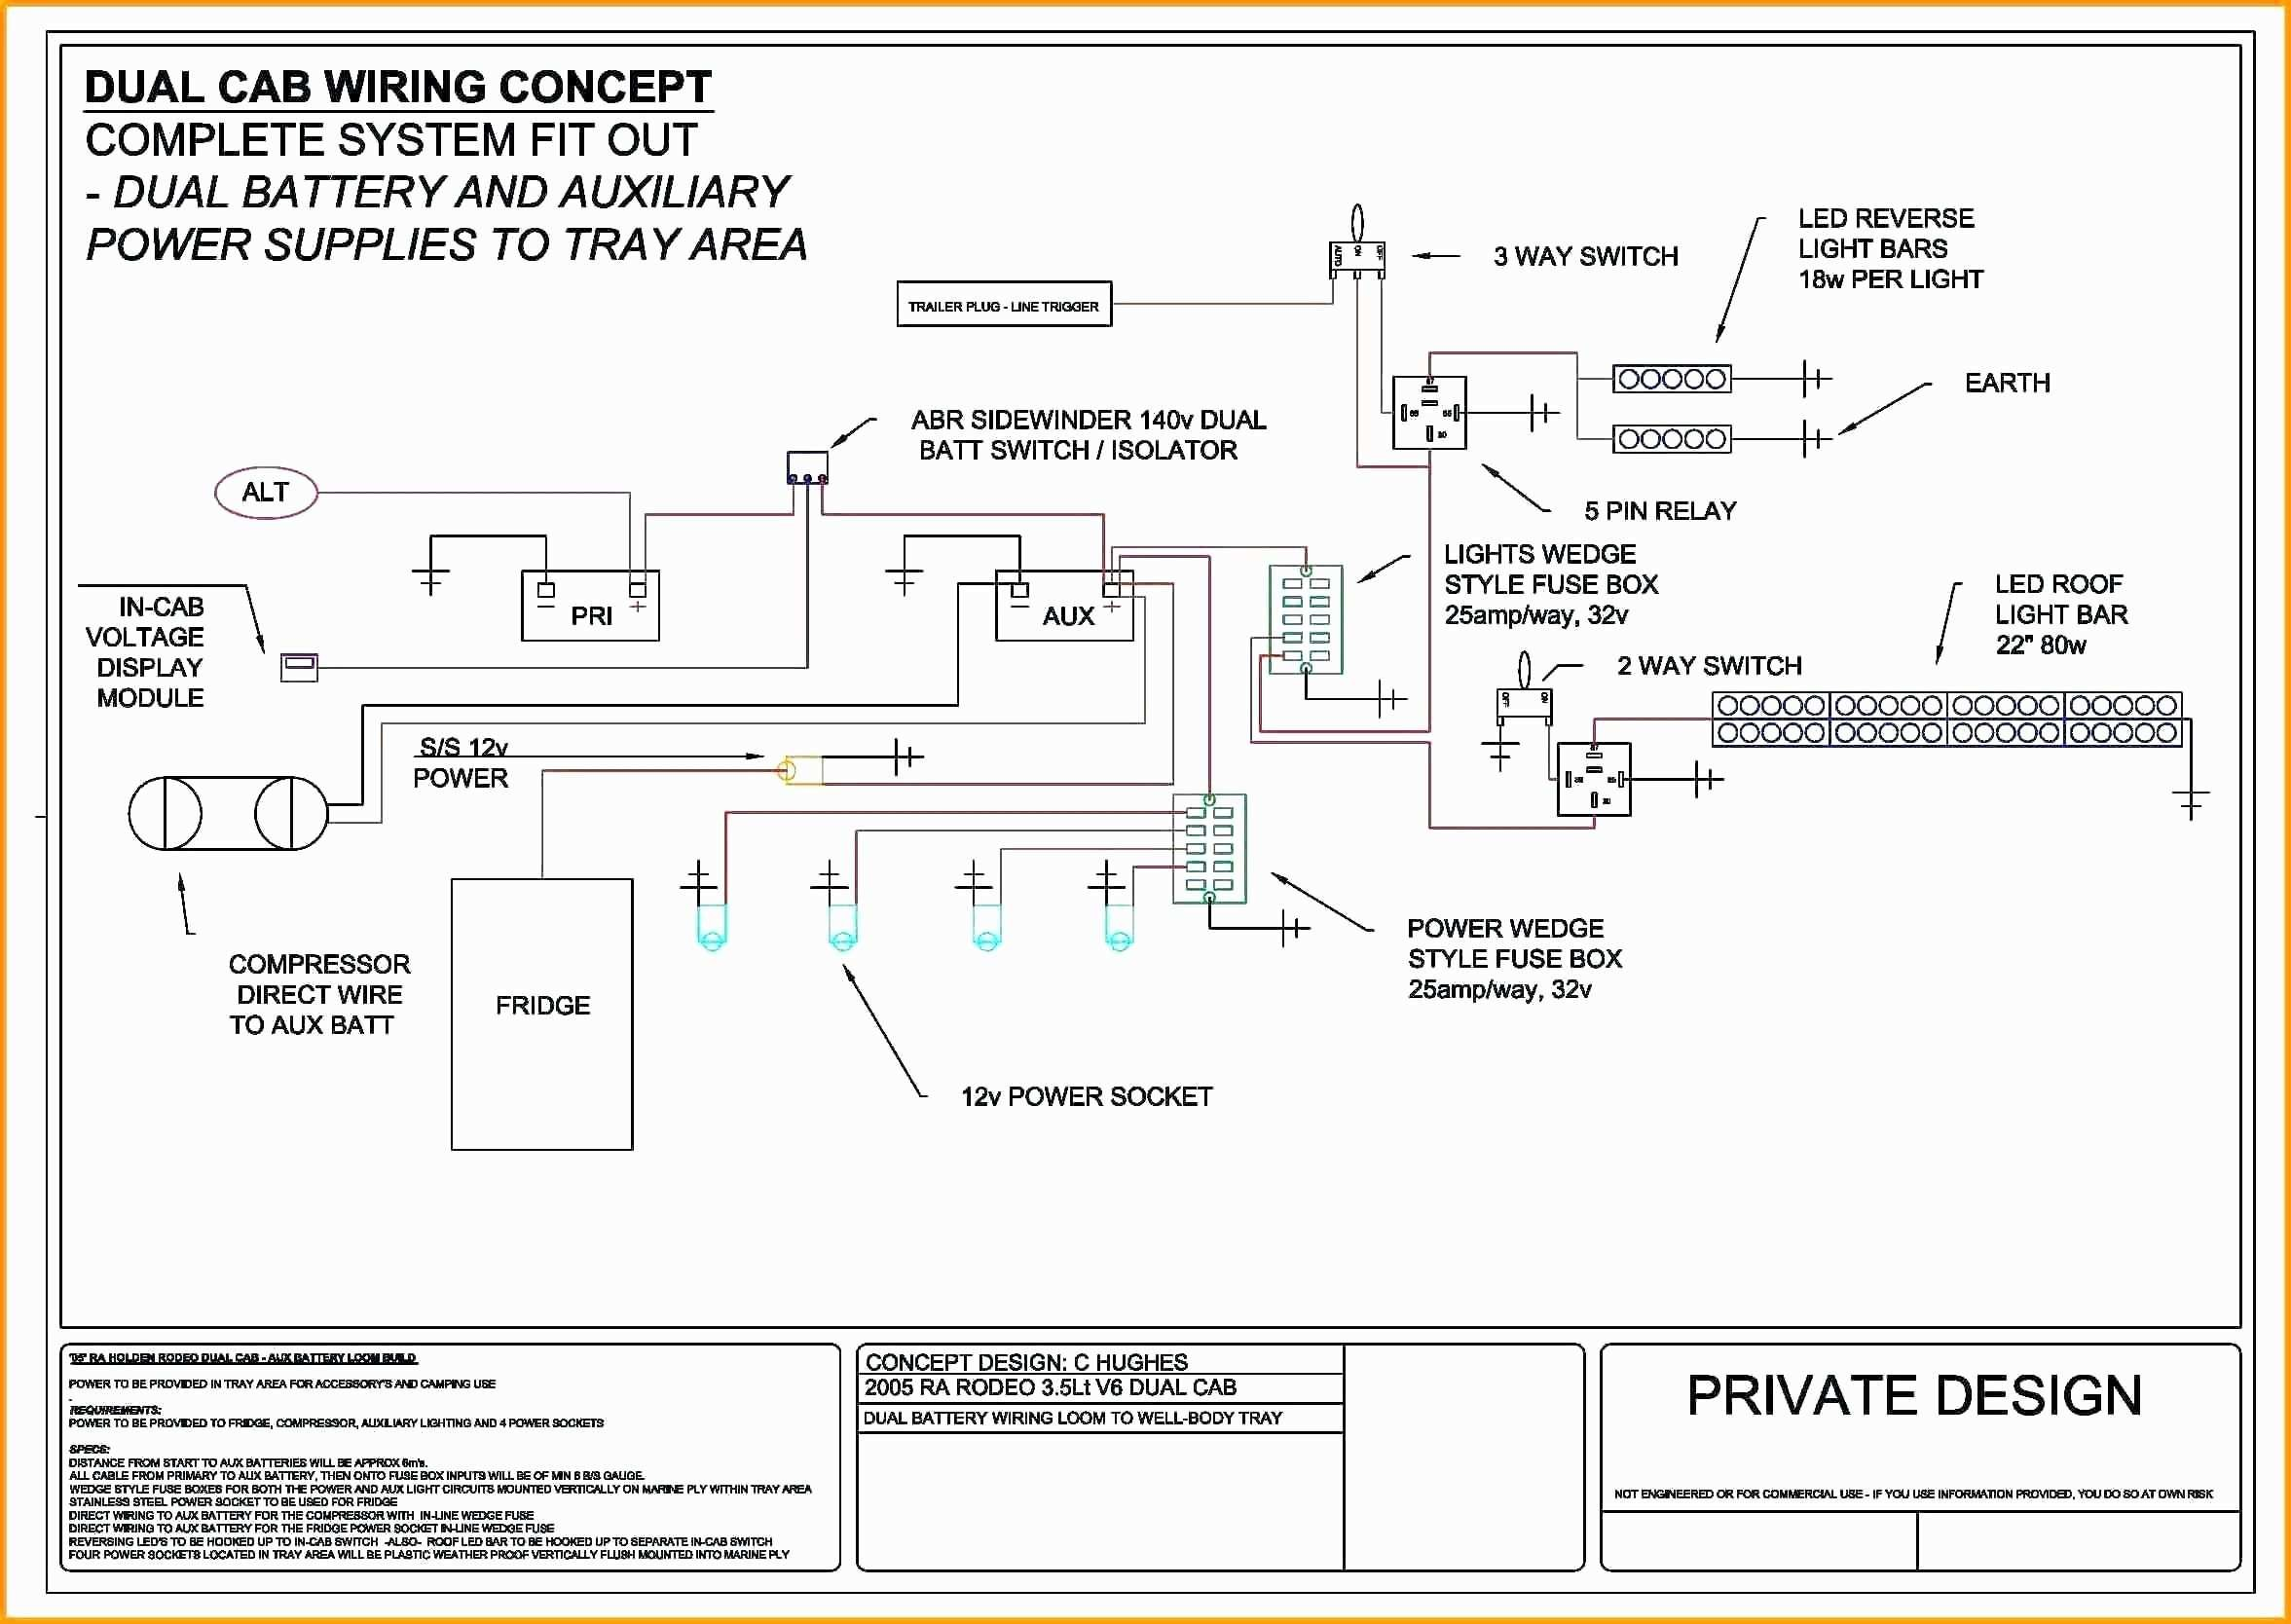 [SCHEMATICS_4US]  RV_8669] Wiring Diagram Alternator Wiring Diagram Delco Remy Alternator  Wiring Wiring Diagram | Delco Remy Alternator Wiring Schematic |  | Xortanet Eatte Mohammedshrine Librar Wiring 101